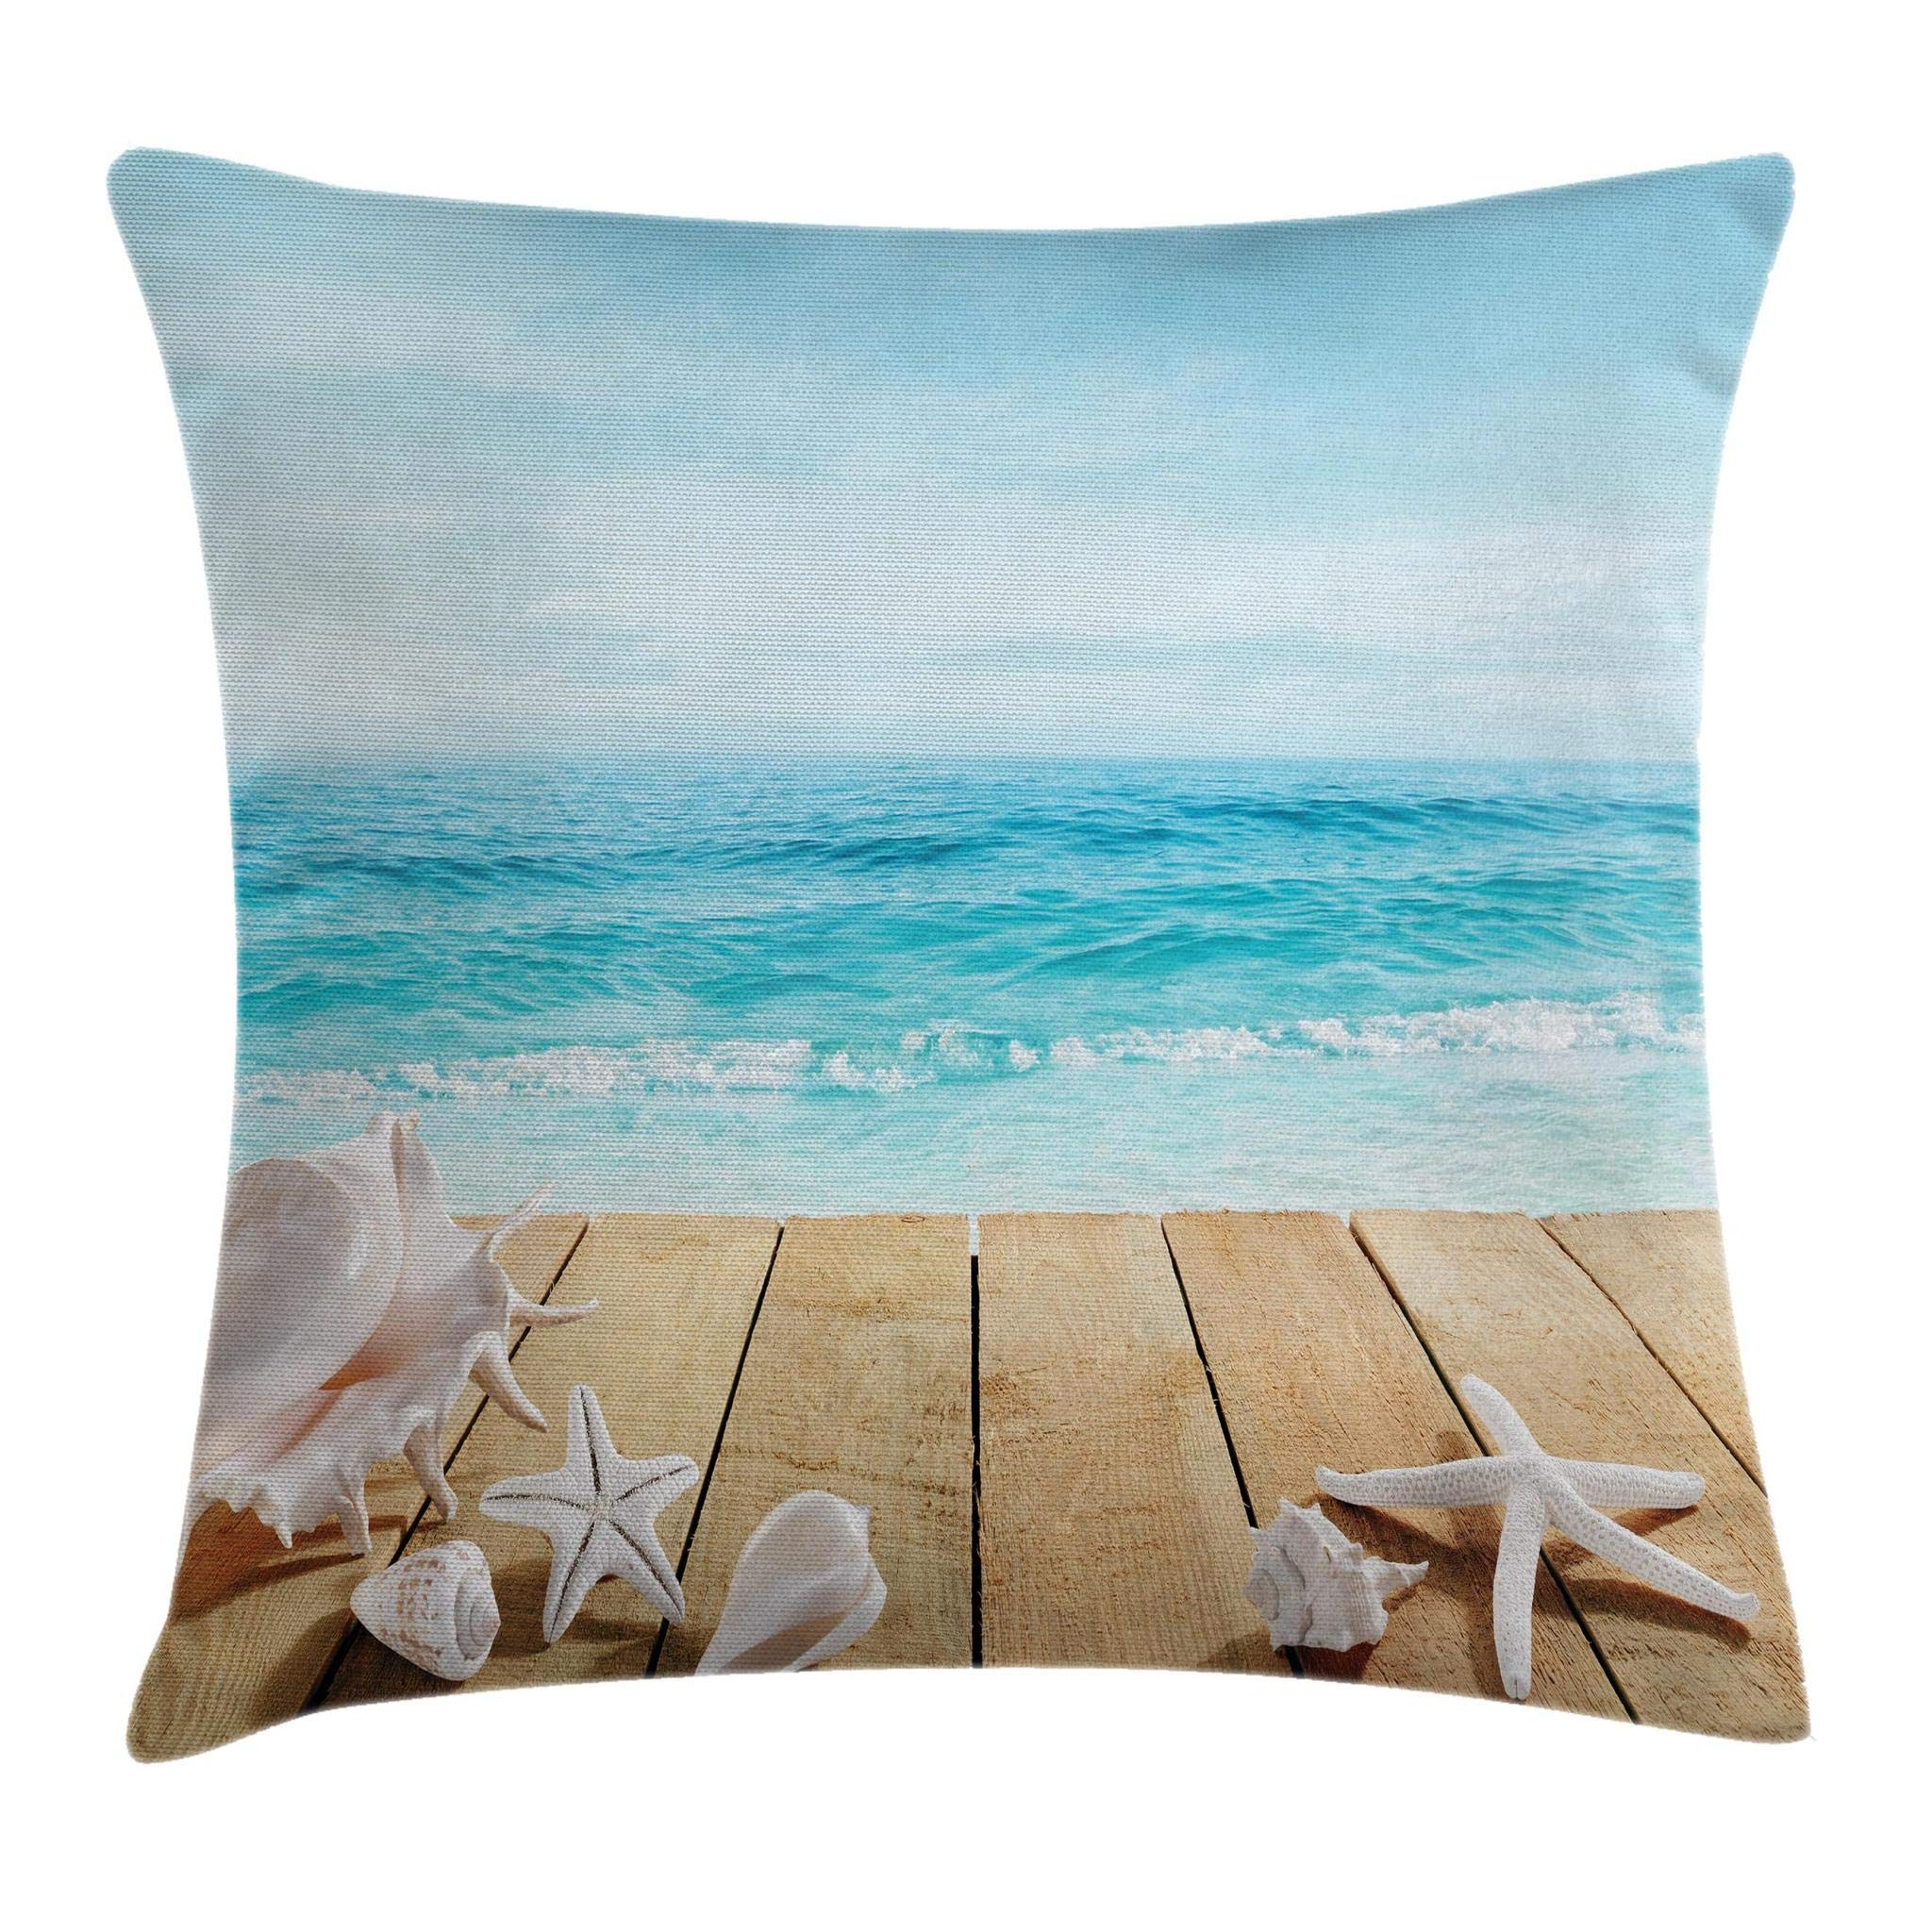 Ambesonne Ocean Throw Pillow Cushion Cover, Wooden Boardwald Seashells Resort Sunshine Maldives Deck Waves Beach Theme, Decorative Square Accent Pillow Case, 18 X18 Inches, Sky Blue and Beige